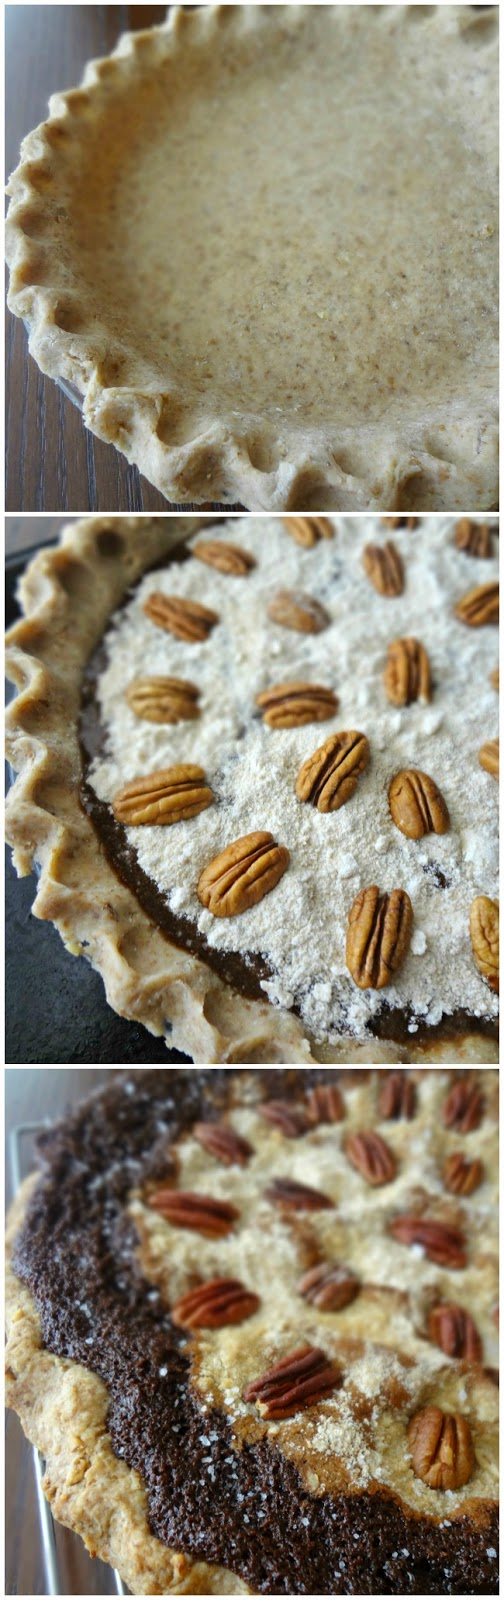 Chocolate Shoofly Pie with Pecan Whole Wheat Crust